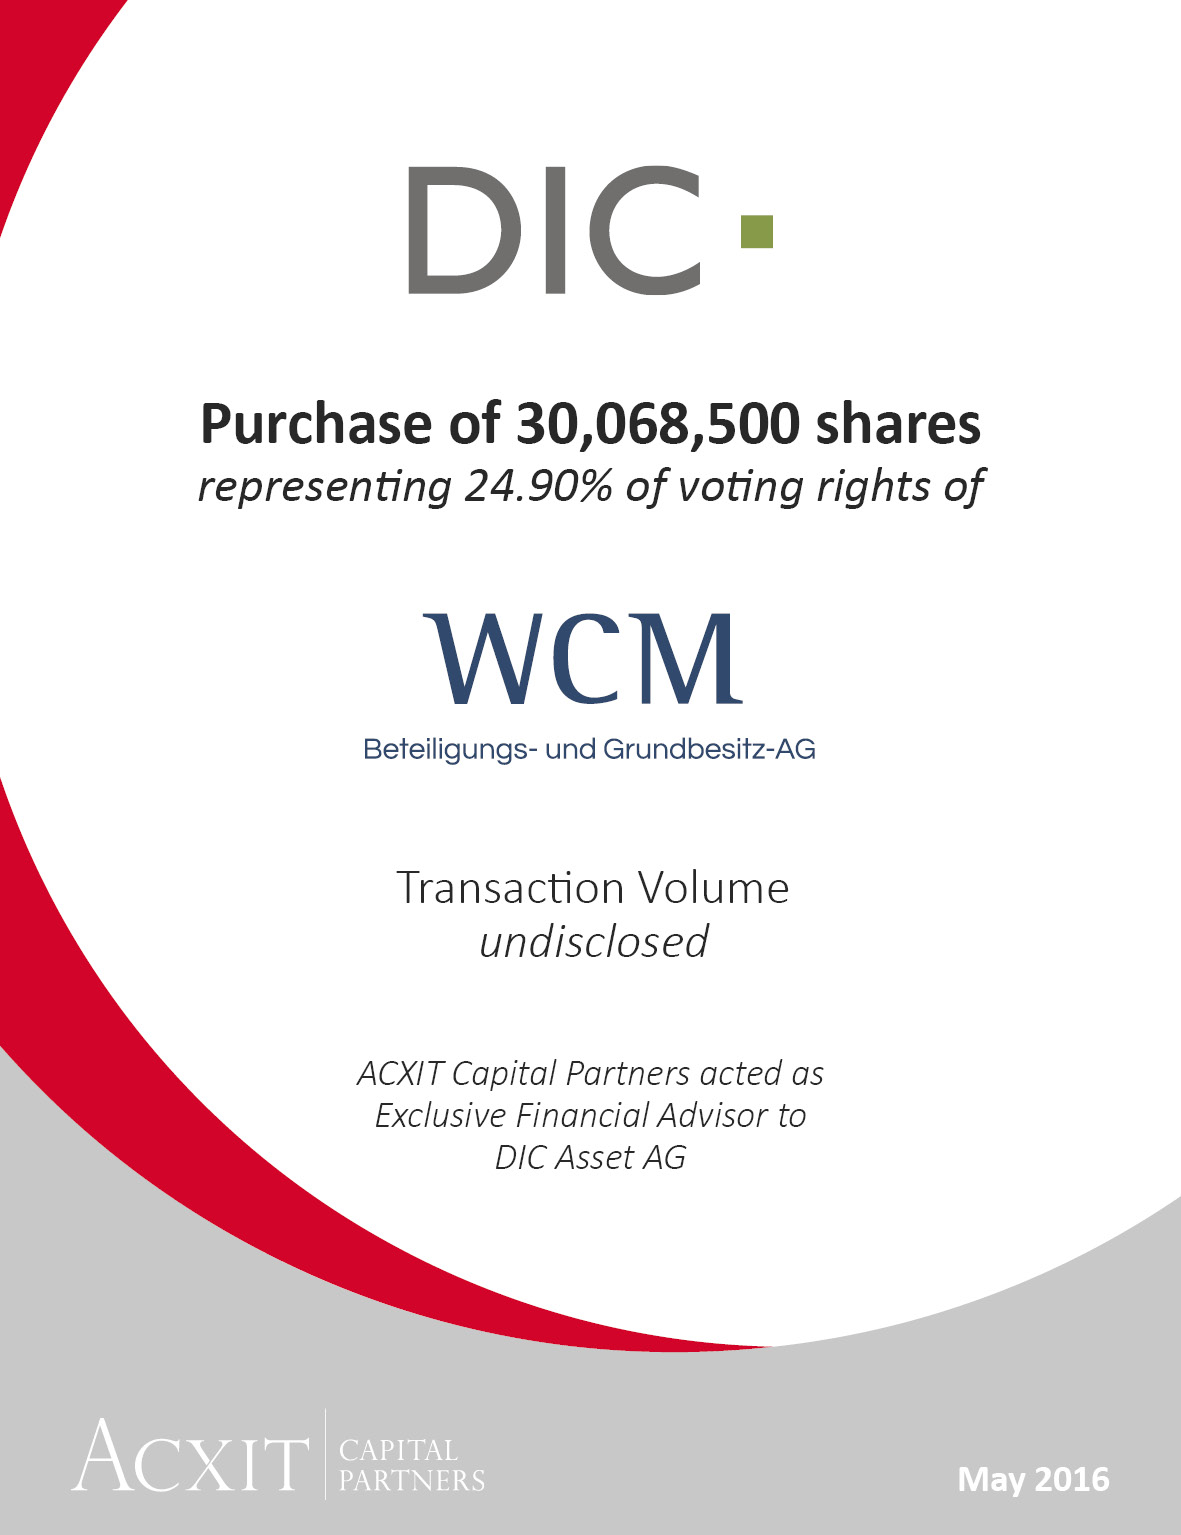 DIC acquires 24.9% of voting rights in WCM